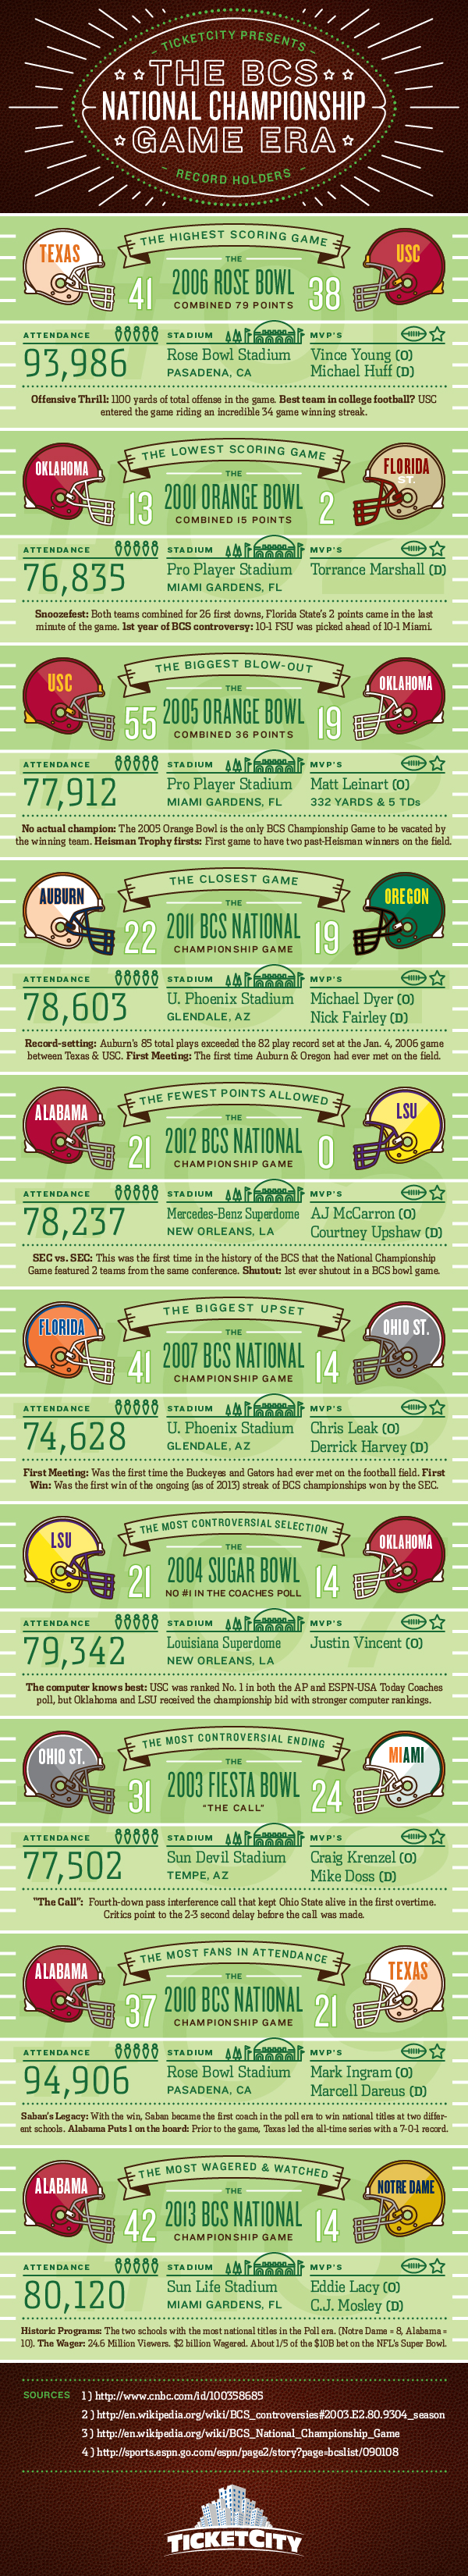 TicketCity_BCS+Infographic_Concepts_Final